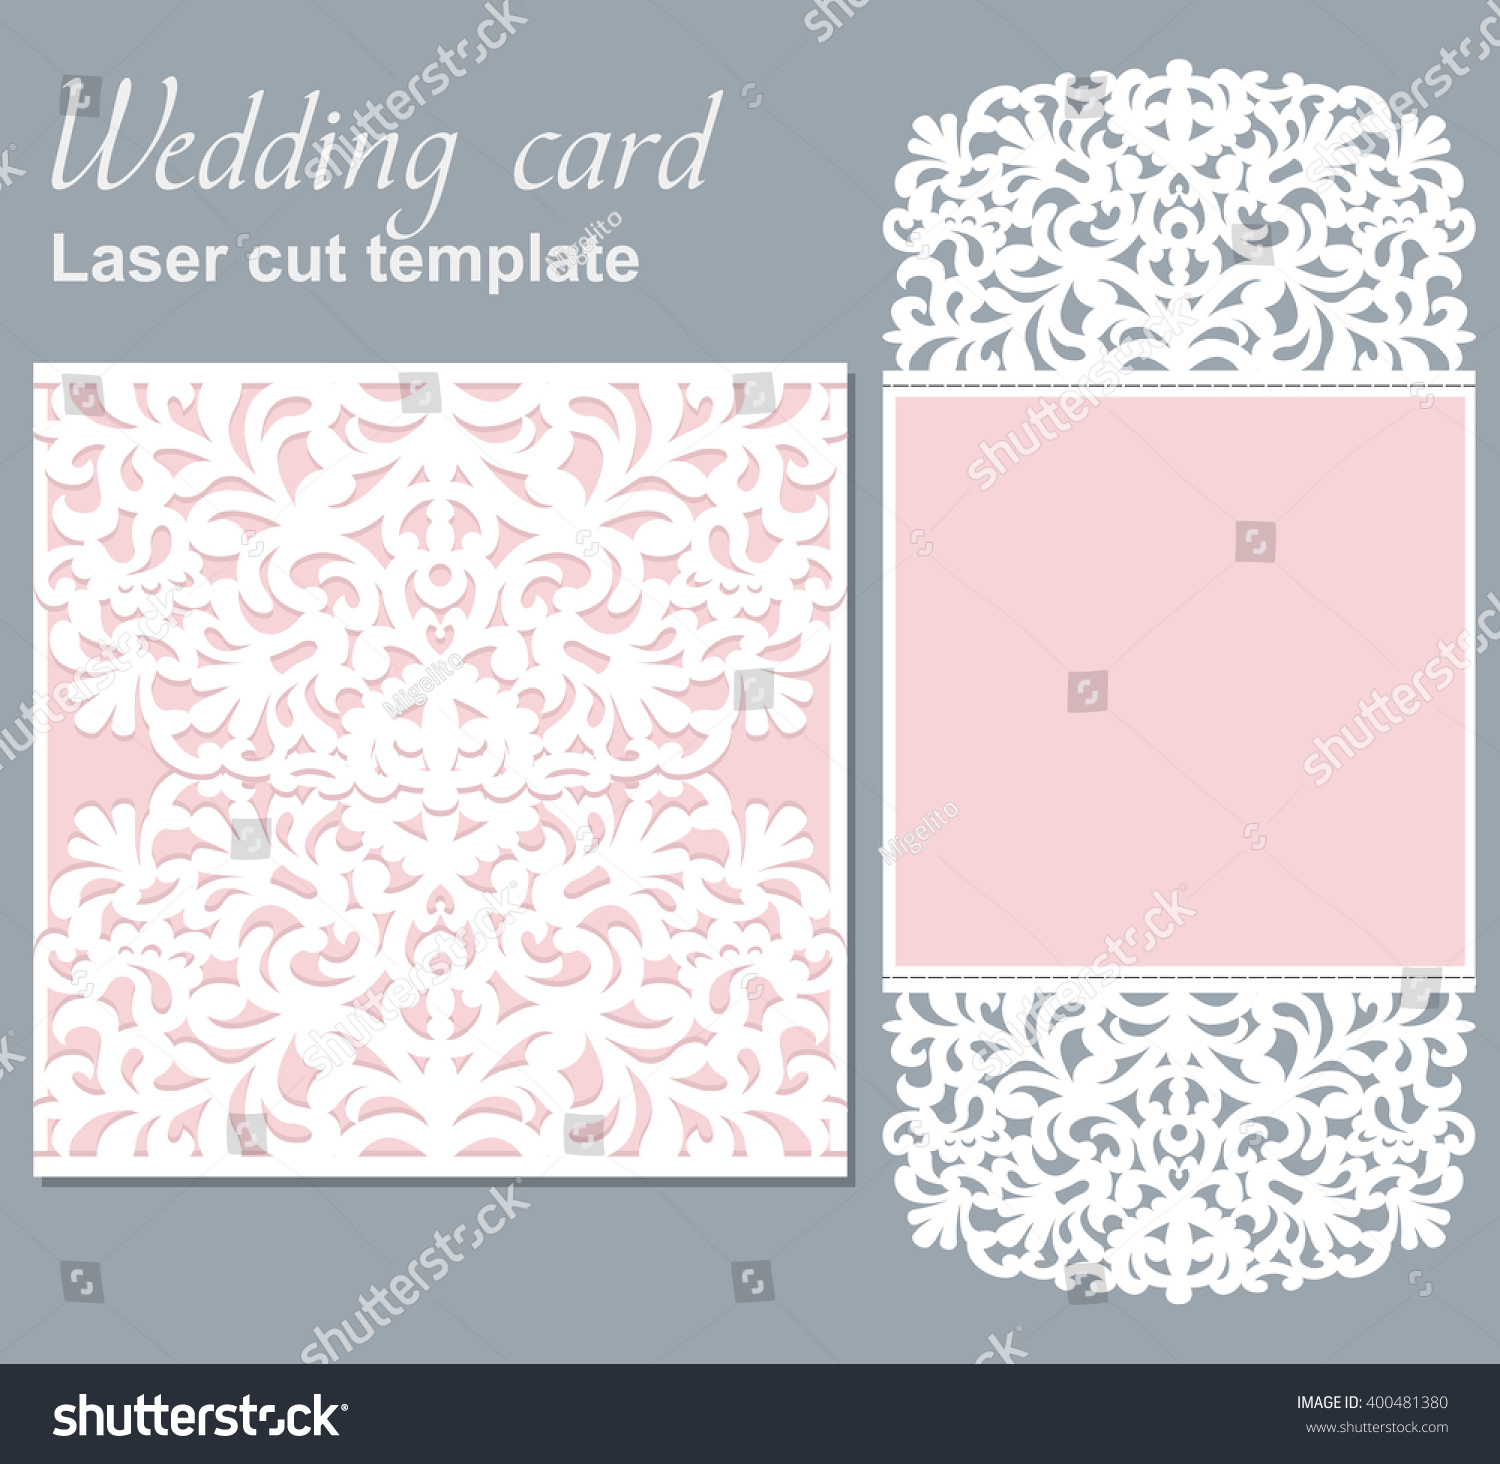 vector die laser cut wedding card stock vector 400481380 shutterstock. Black Bedroom Furniture Sets. Home Design Ideas